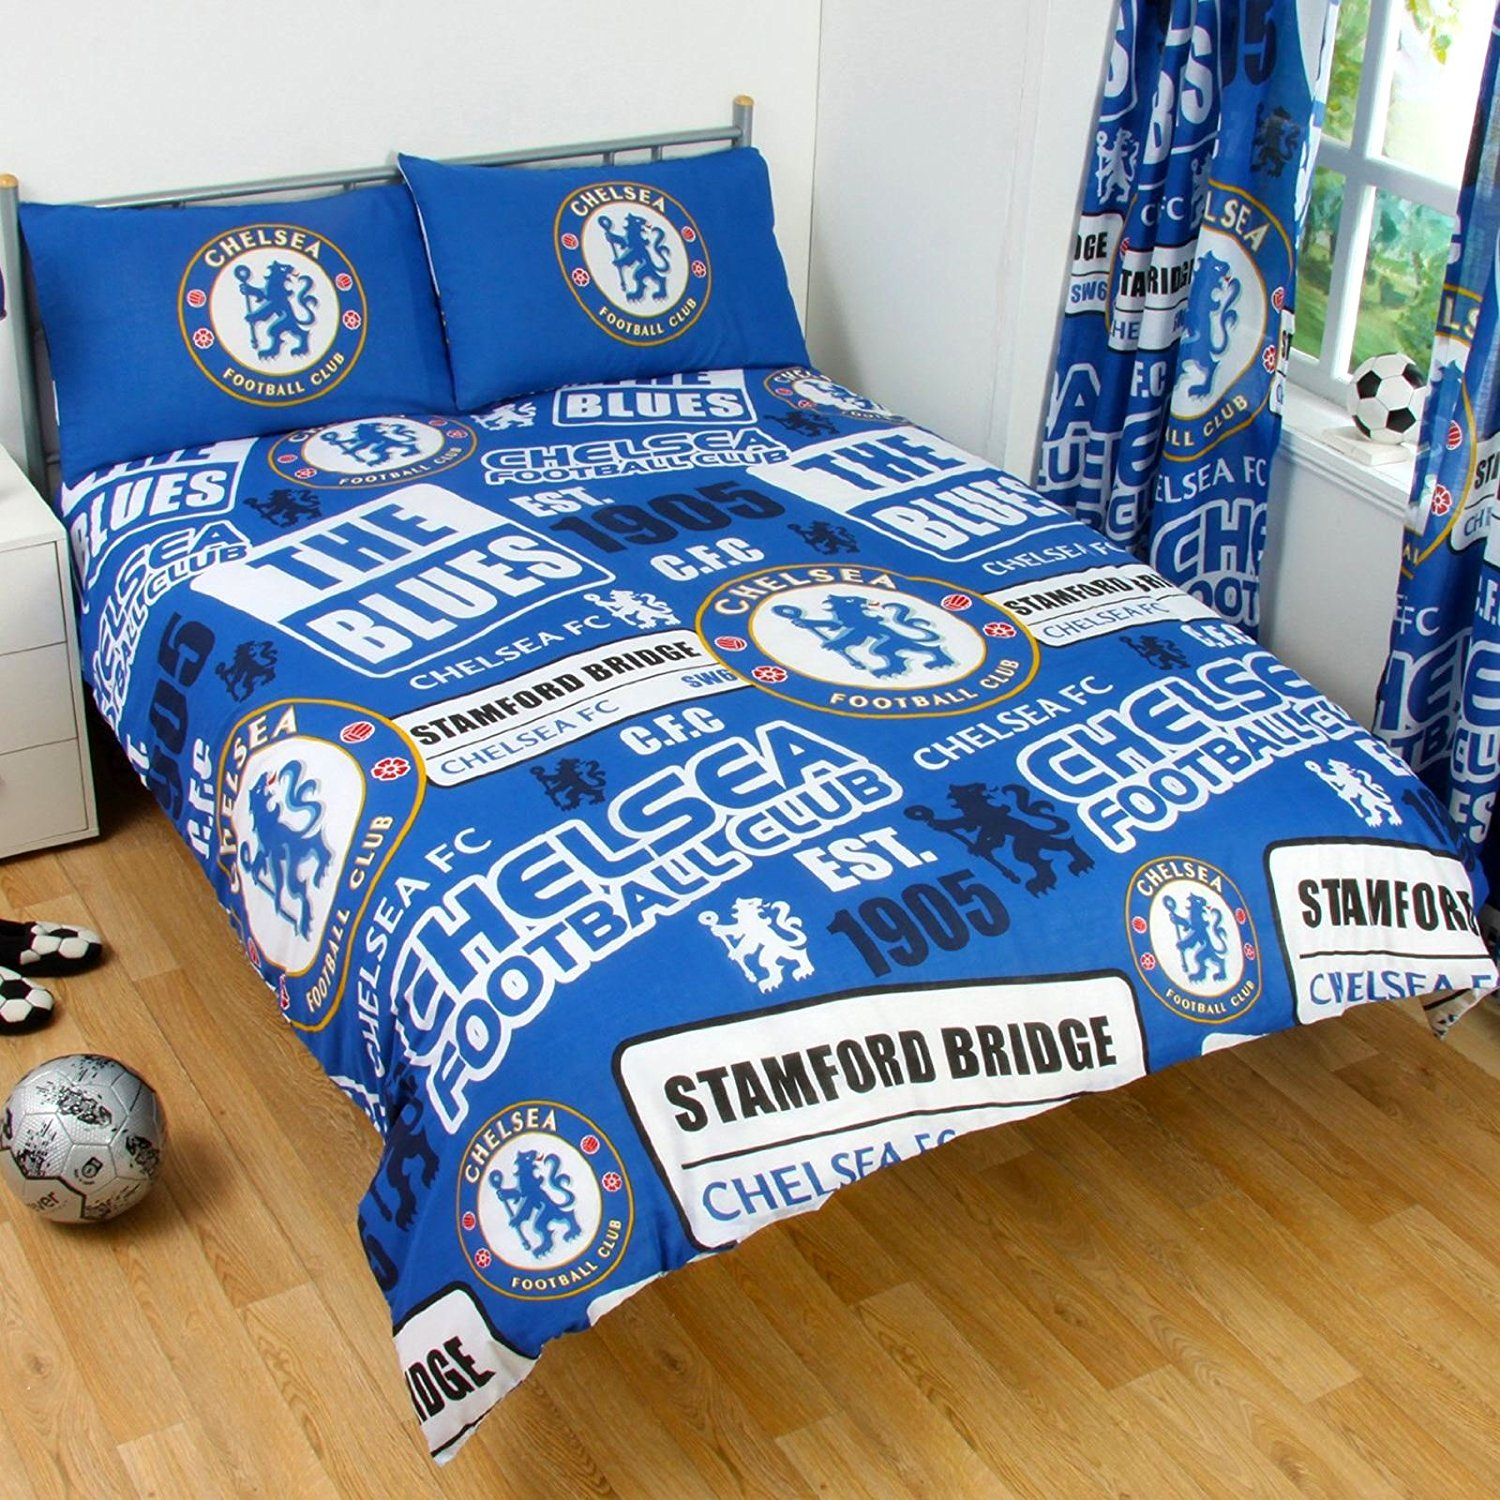 Boys Double Quilt Cover Details About Official Chelsea Football Club Double Duvet Quilt Cover Set Boys Kids Blue Bed